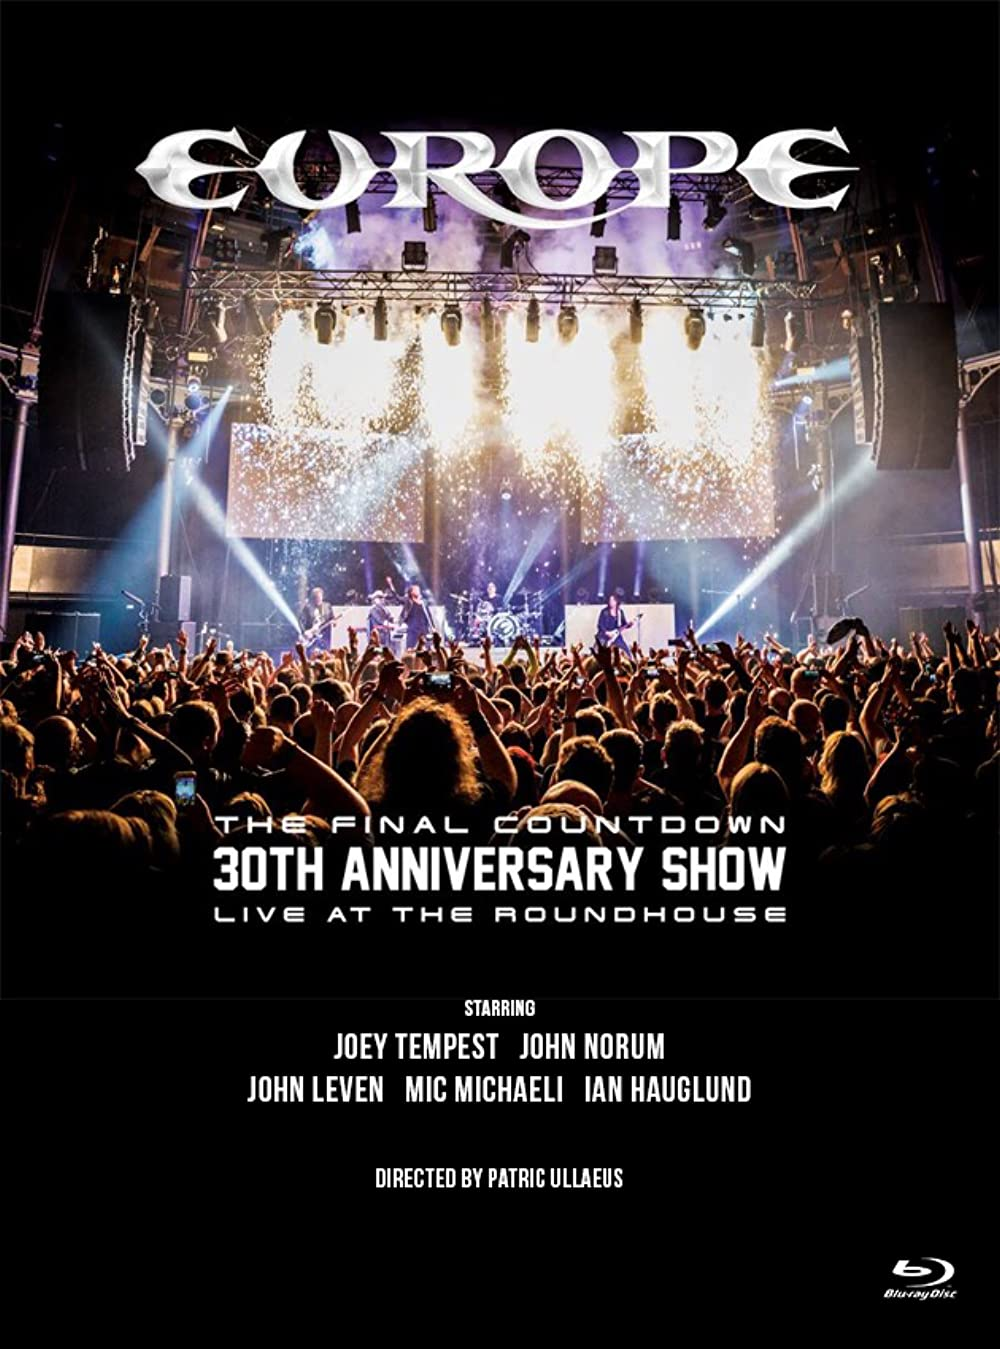 Watch Europe, the Final Countdown 30th Anniversary Show: Live at the Roundhouse Online